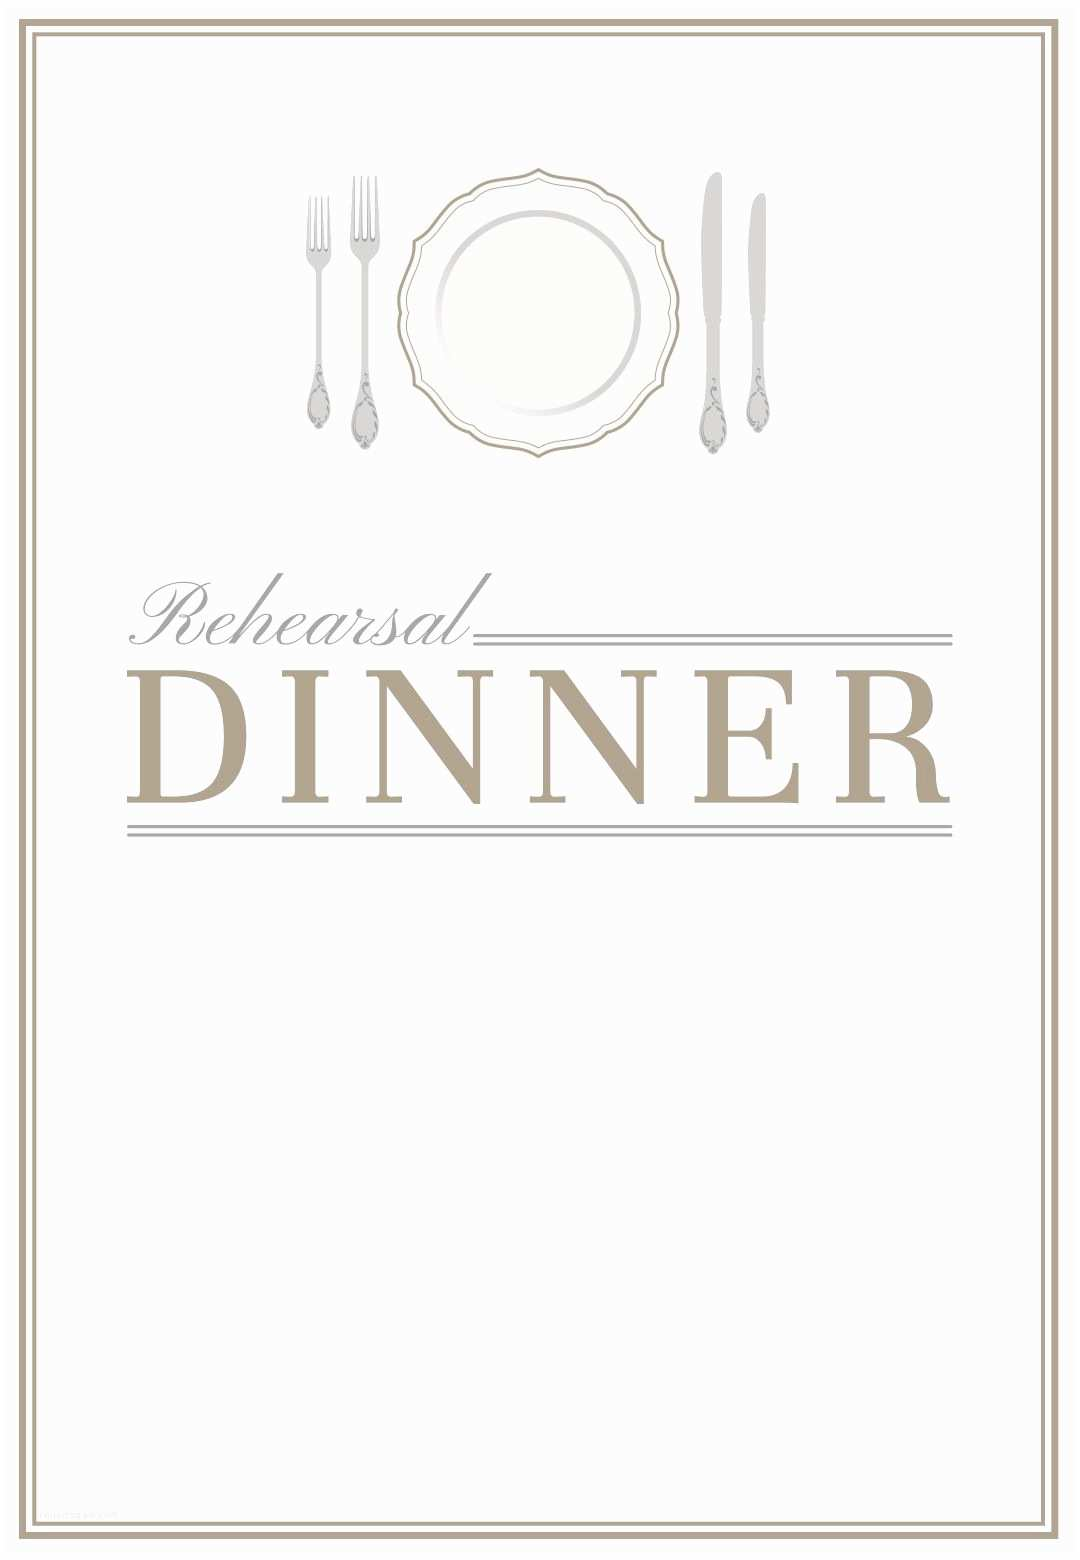 Dinner Party Invitation Template Elegant Setting Free Printable Rehearsal Dinner Party